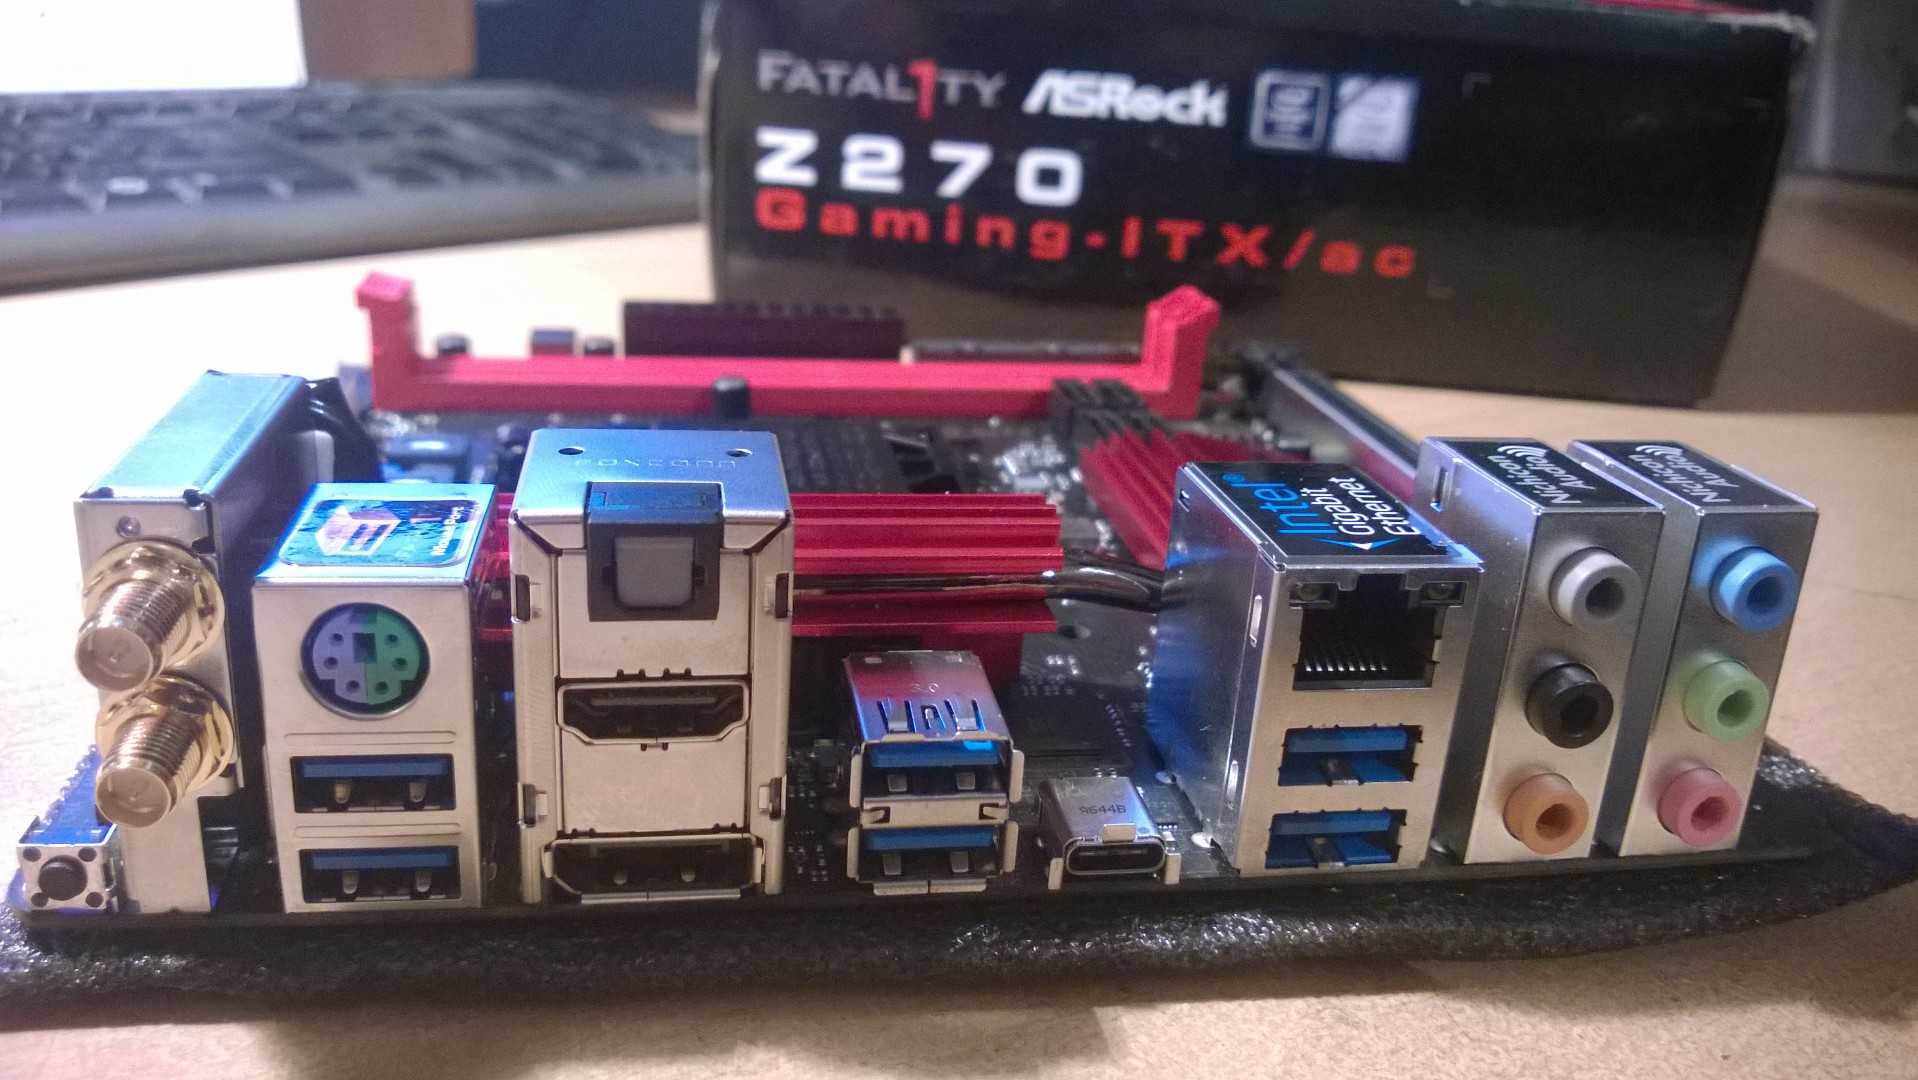 ASRock Fatal1ty Gaming-ITX/ac